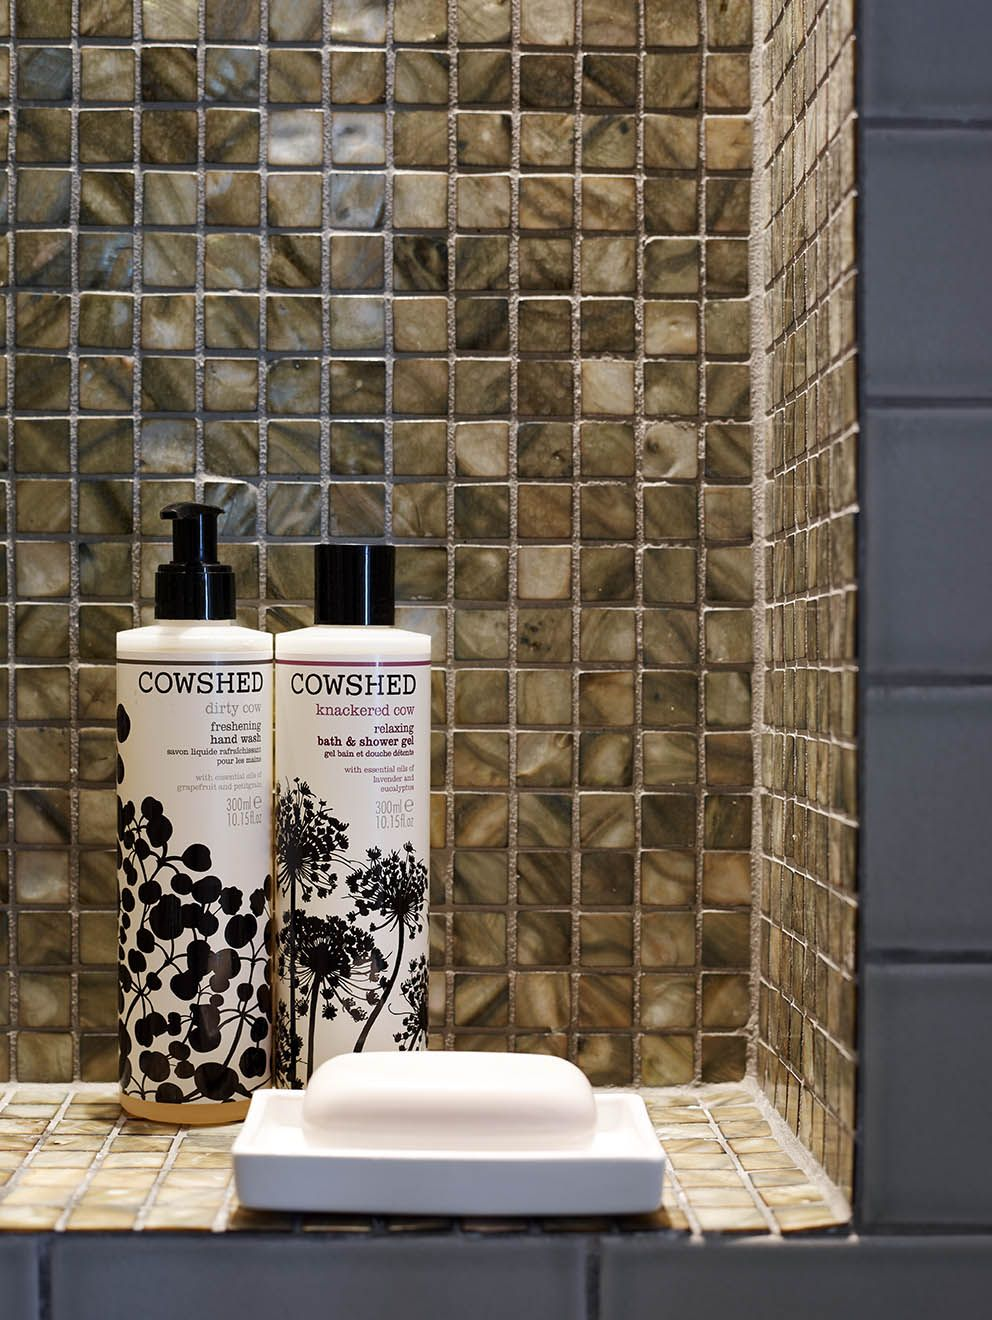 nicola holden designs - the finishing touches to the shower niche